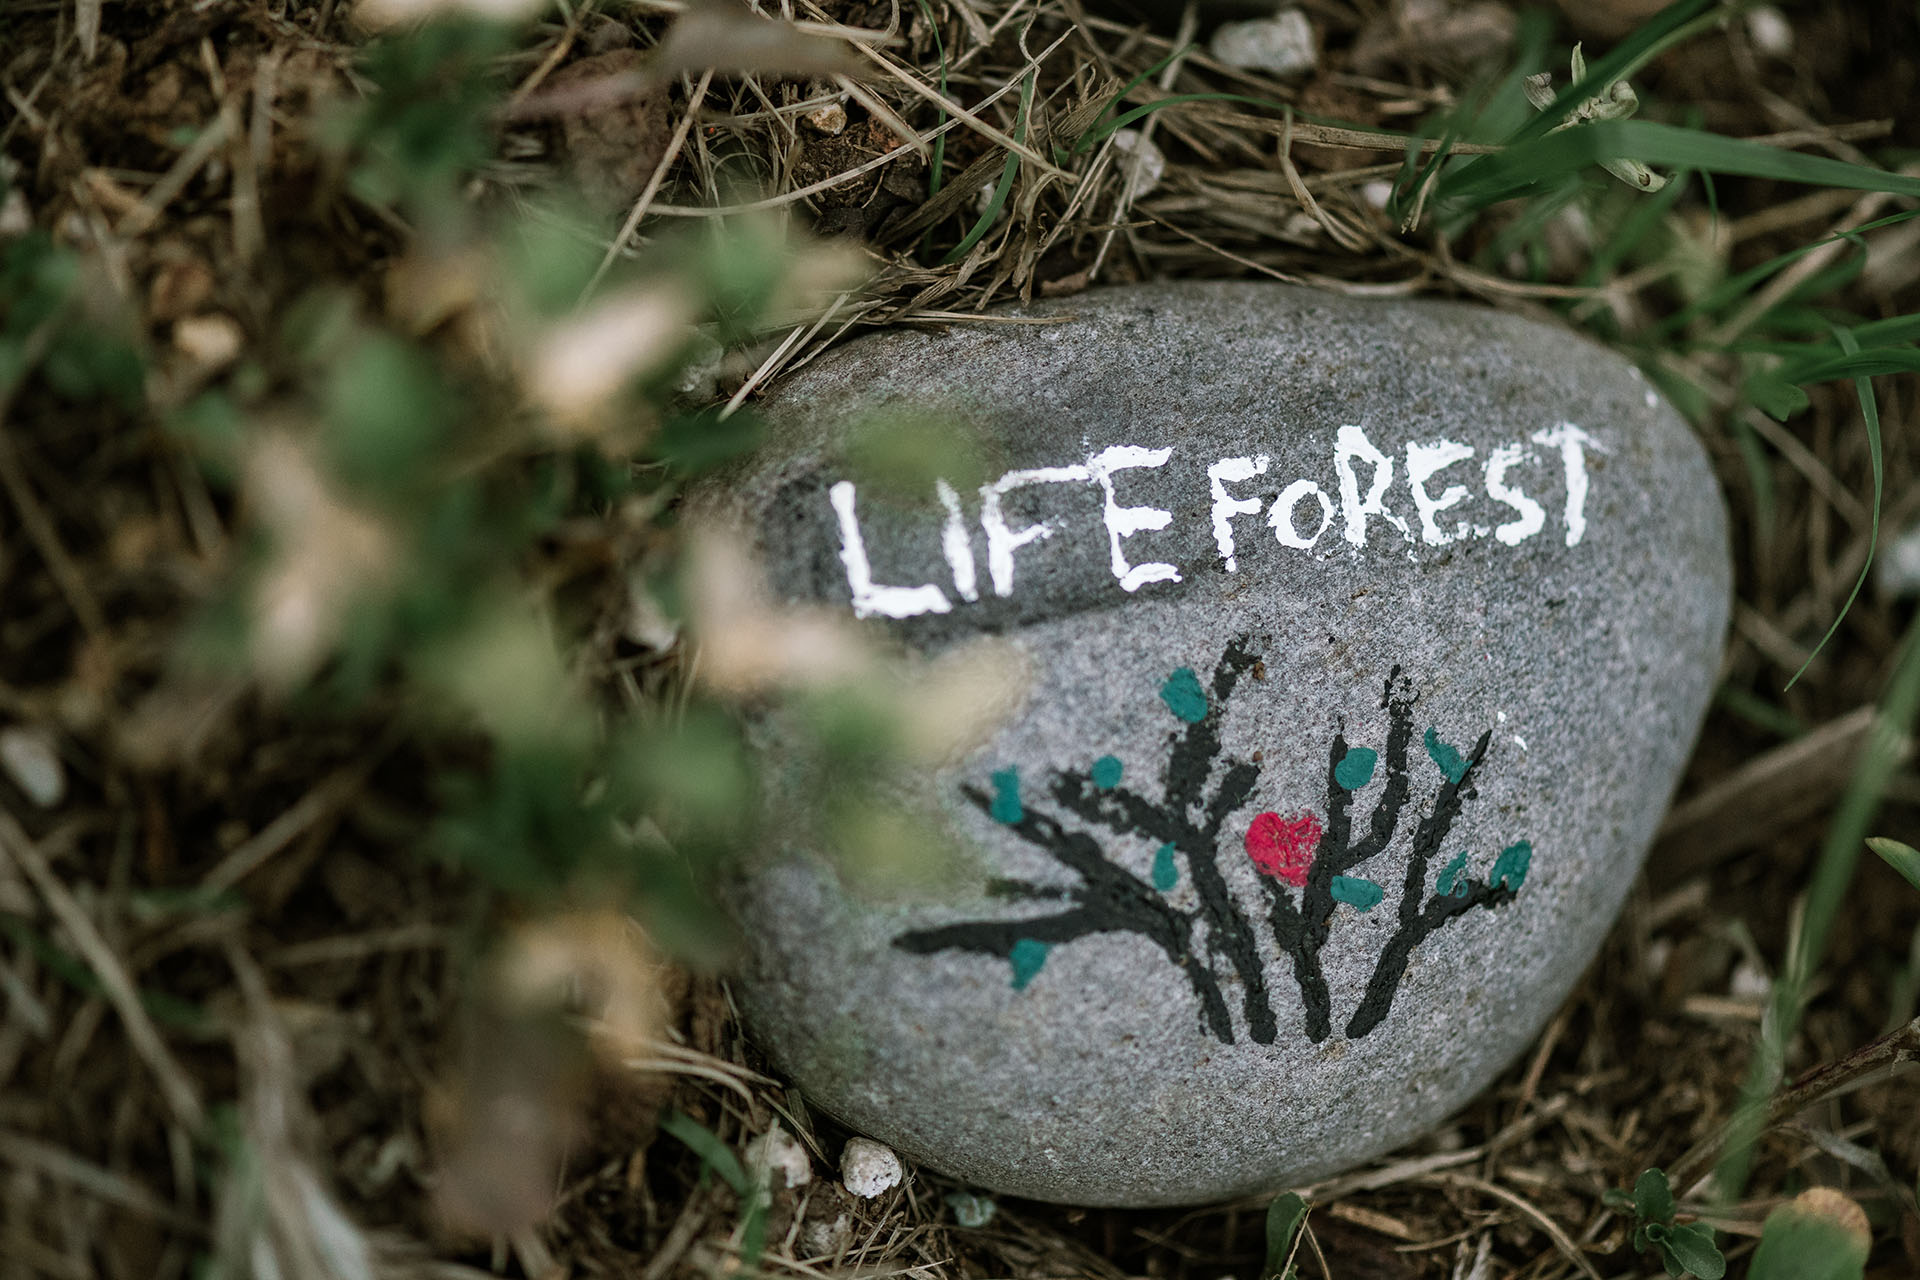 Photo of a rock with Life Forest painted on it.